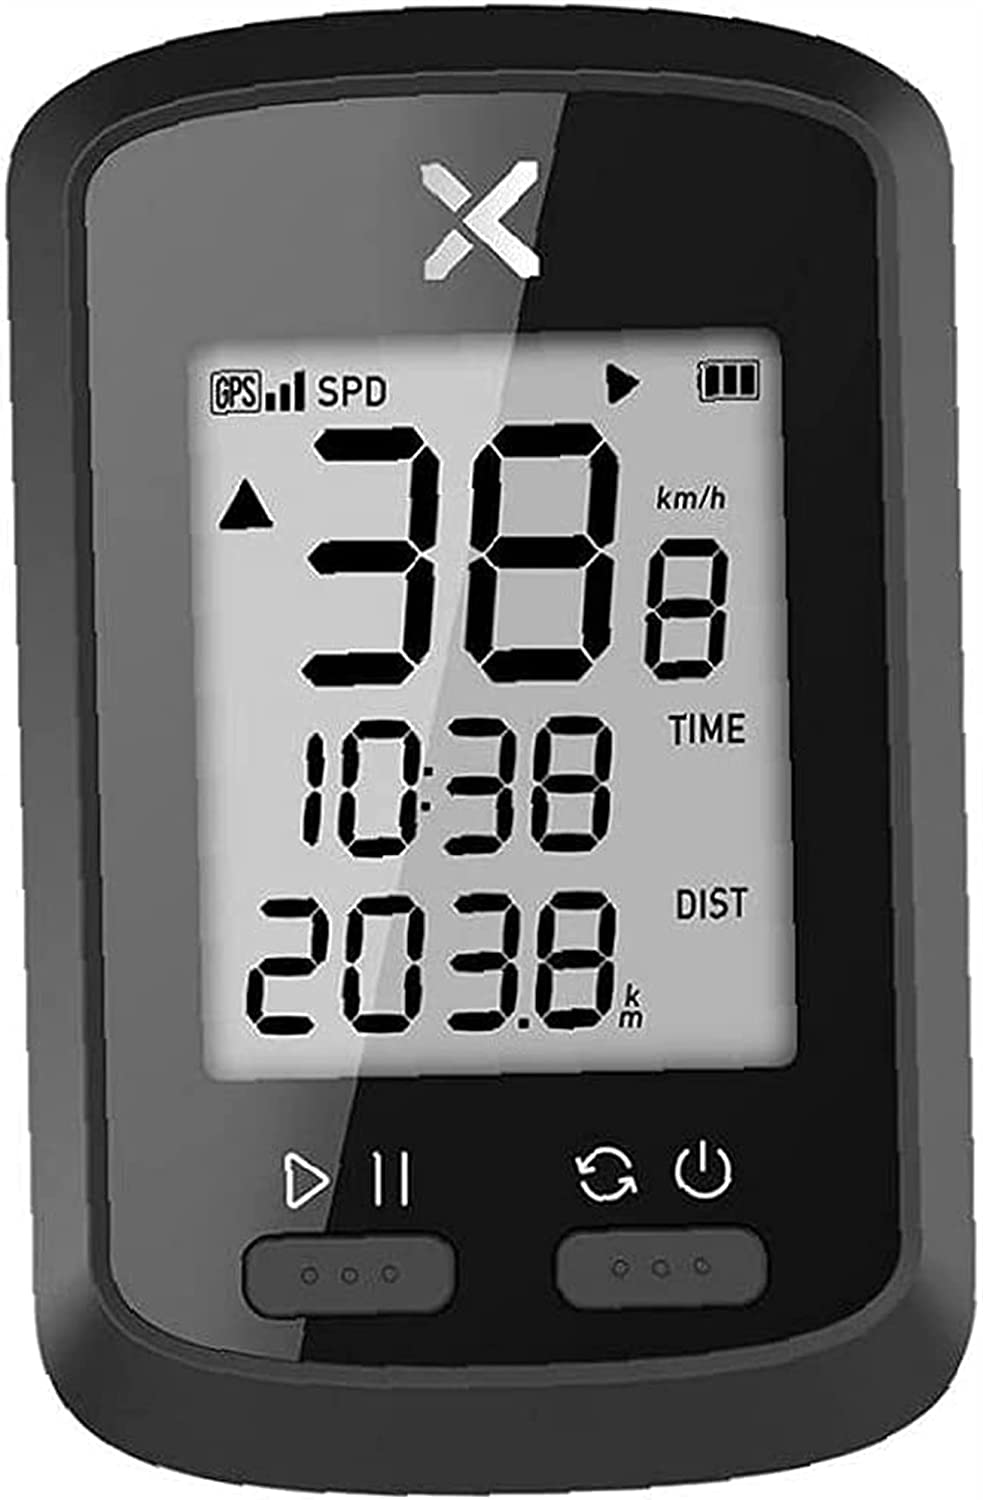 TONG Bike 5 popular GPS Max 69% OFF Computer Accessories English Version Wireless